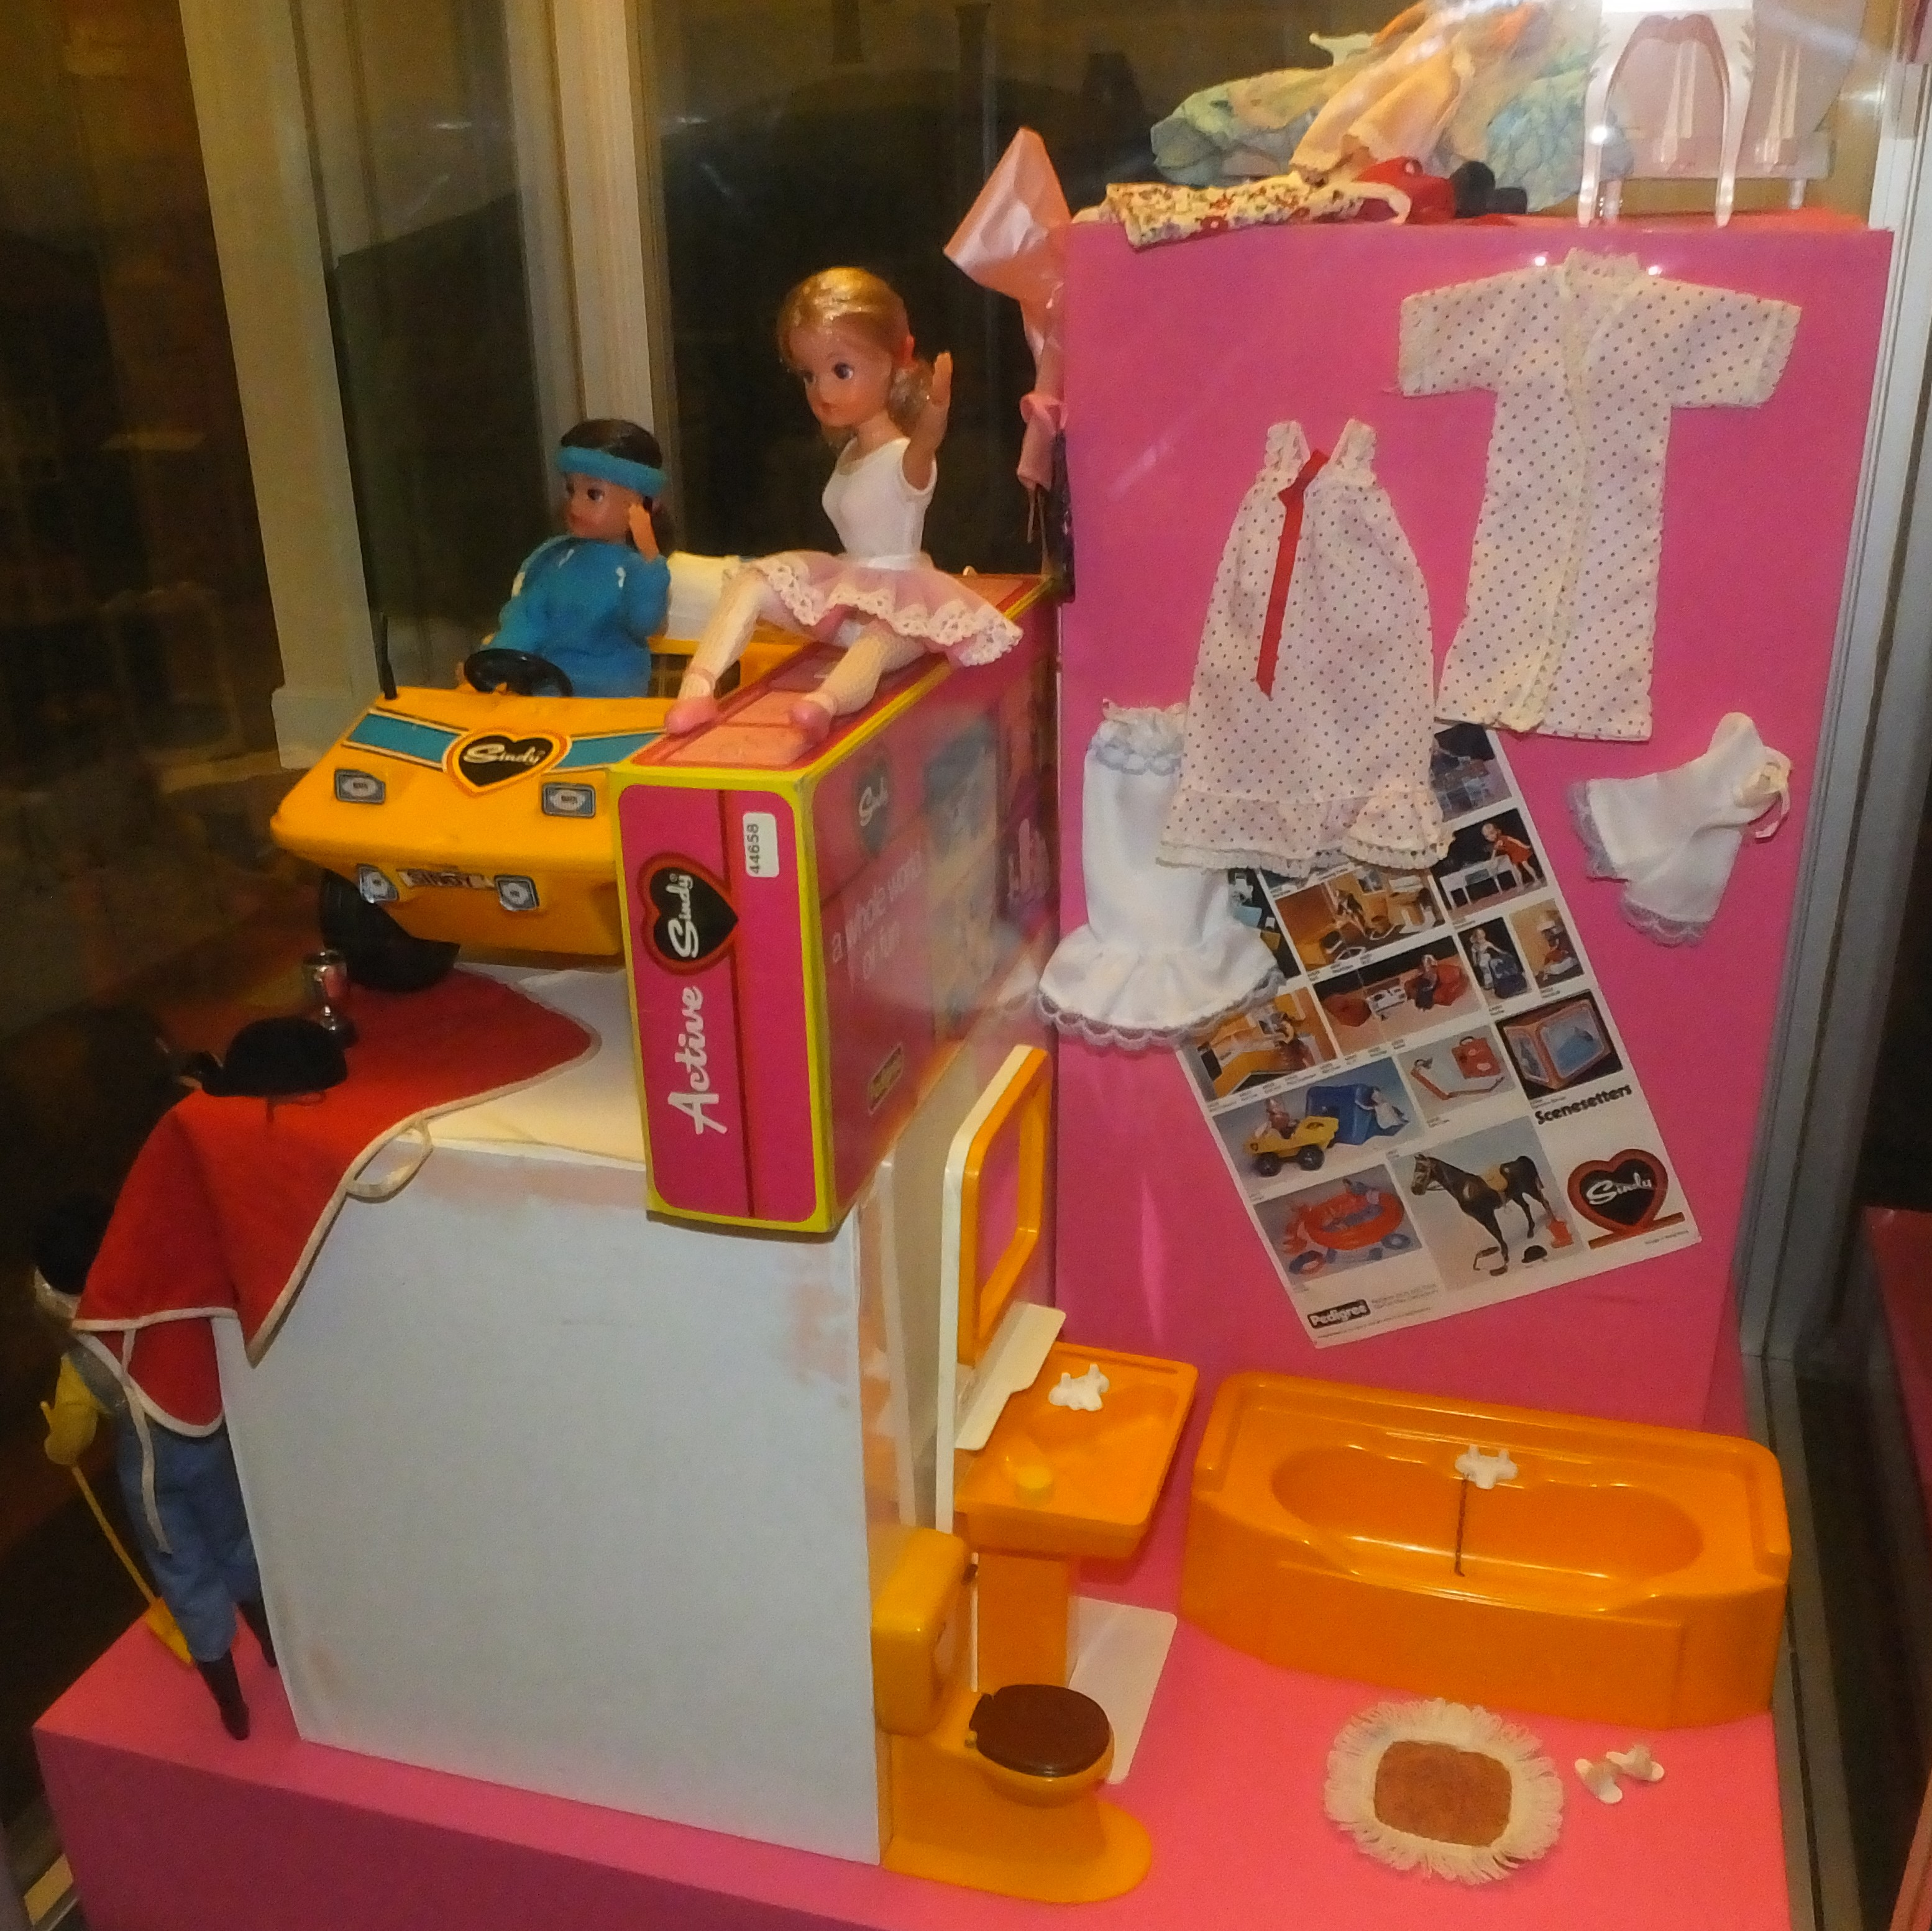 File:JLL Childhood Collection- Fashion doll - Cindy 2795C.JPG - Wikimedia Commons